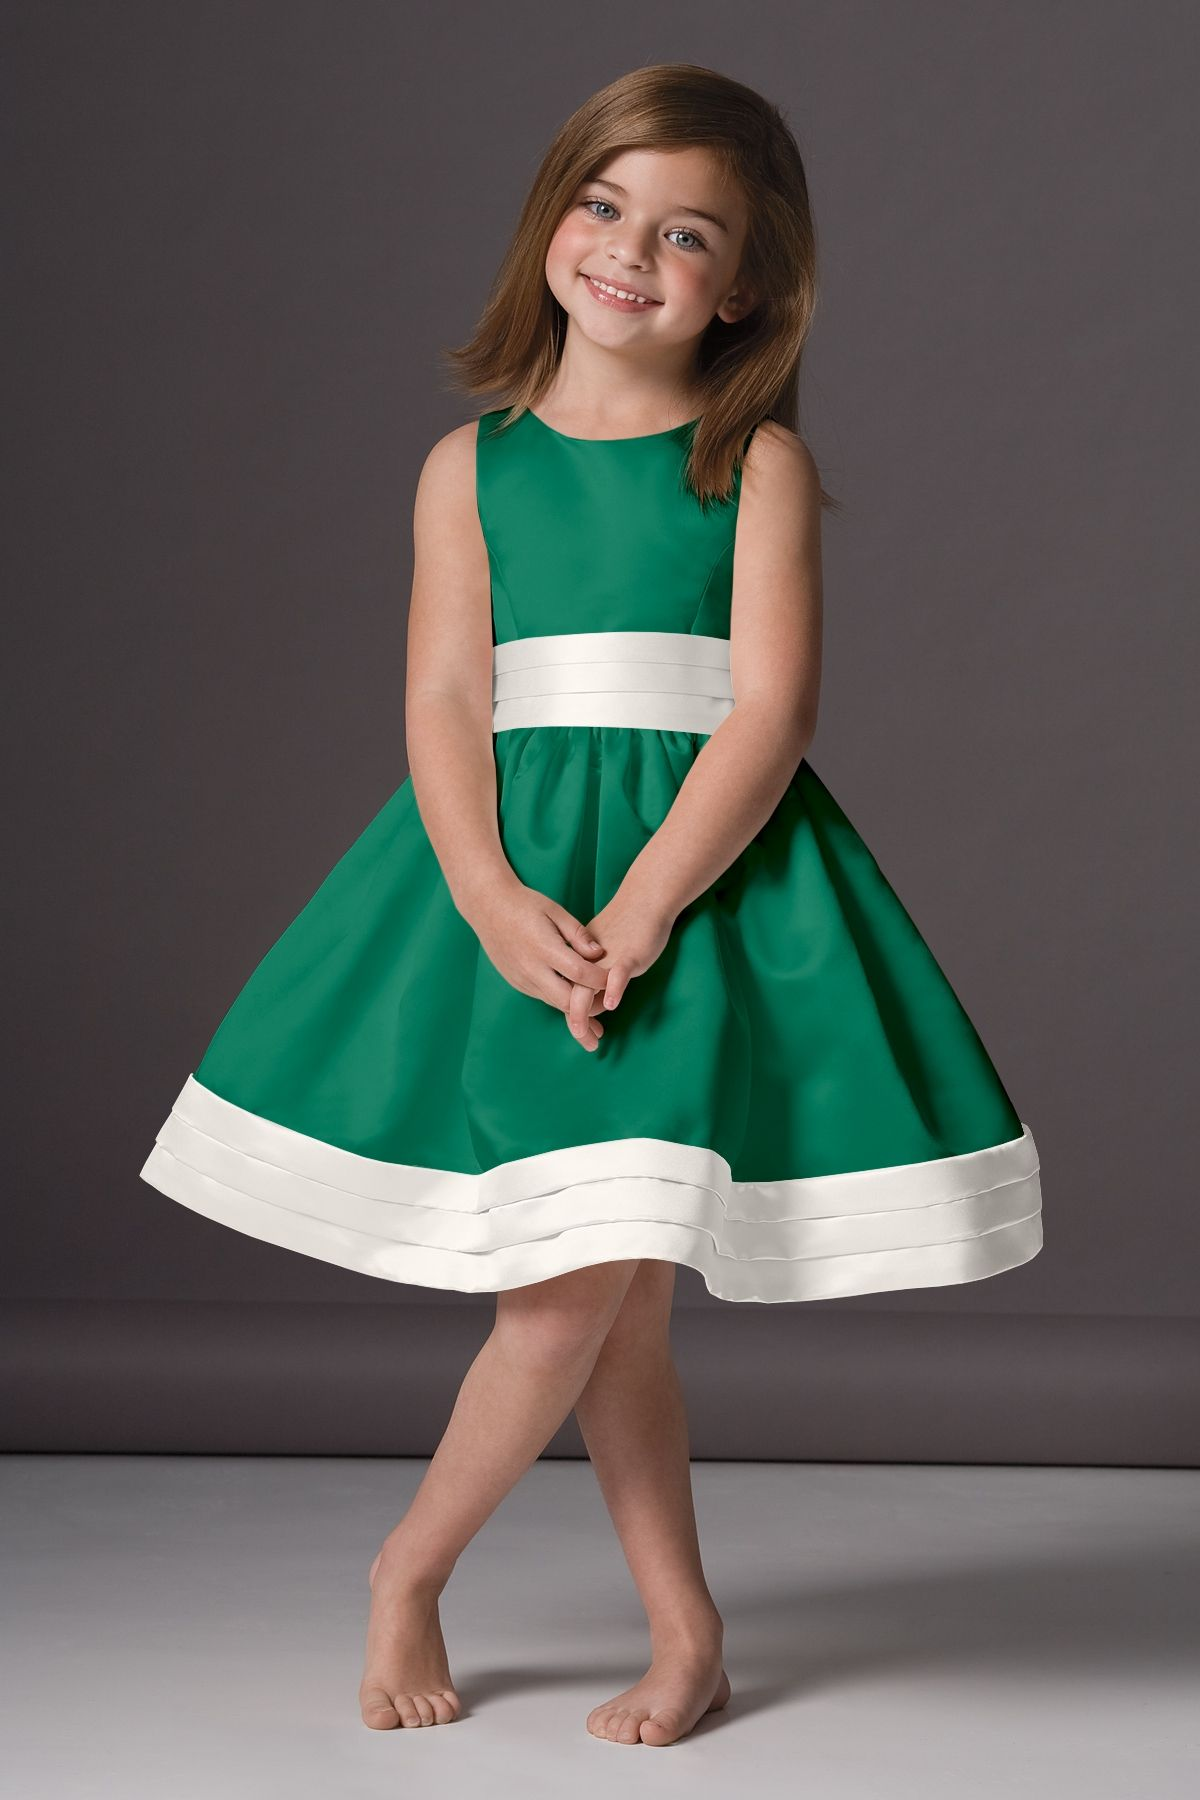 Shop seahorse flower girl dress 46248 in duchess satin at shop seahorse flower girl dress 46248 in duchess satin at weddington way find the ombrellifo Choice Image